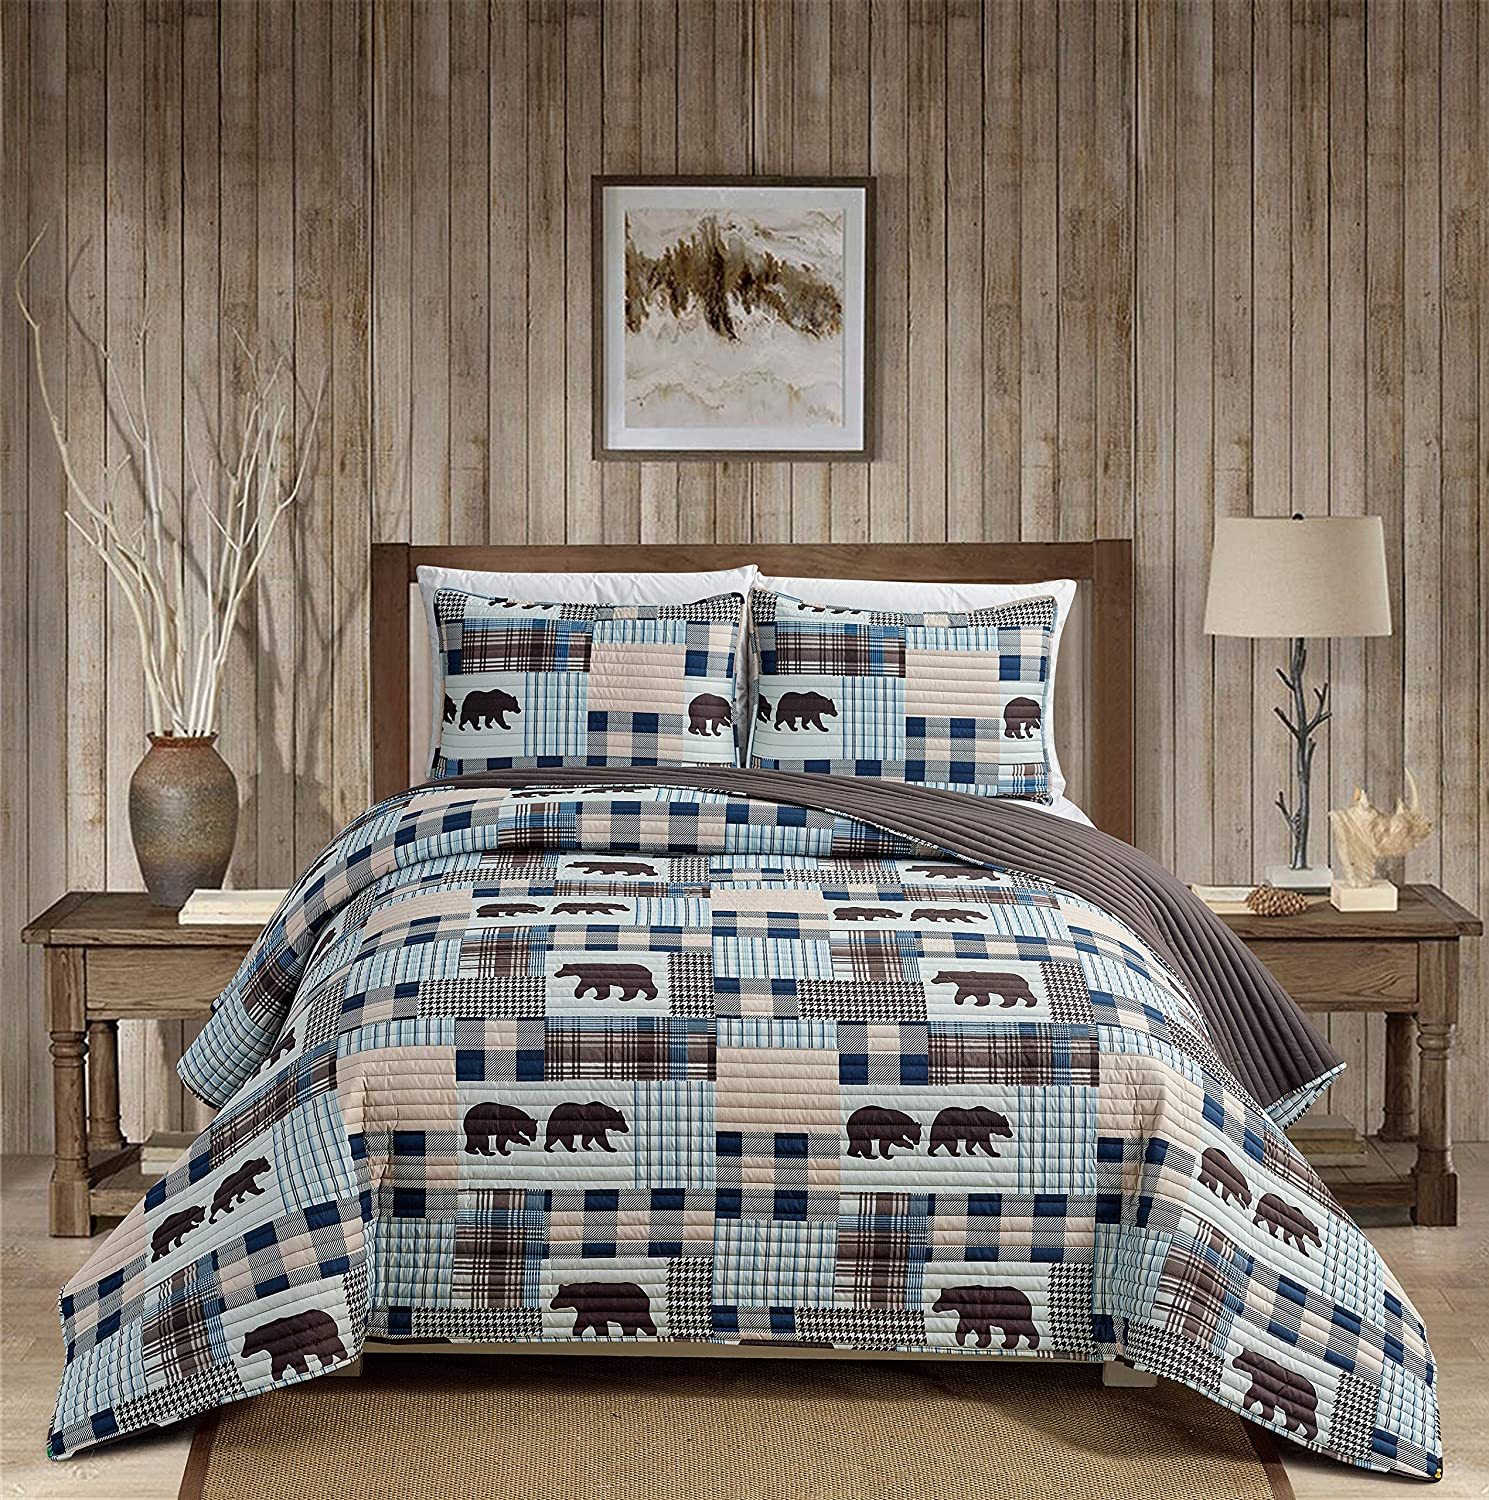 Rustic Modern Farmhouse Cabin Lodge Stripe Quilted Bedspread Coverlet Bedding Set with Patchwork Grizzly Bears and Buffalo Plaid Check Patterns Beige Blue - Western 2 (Twin)